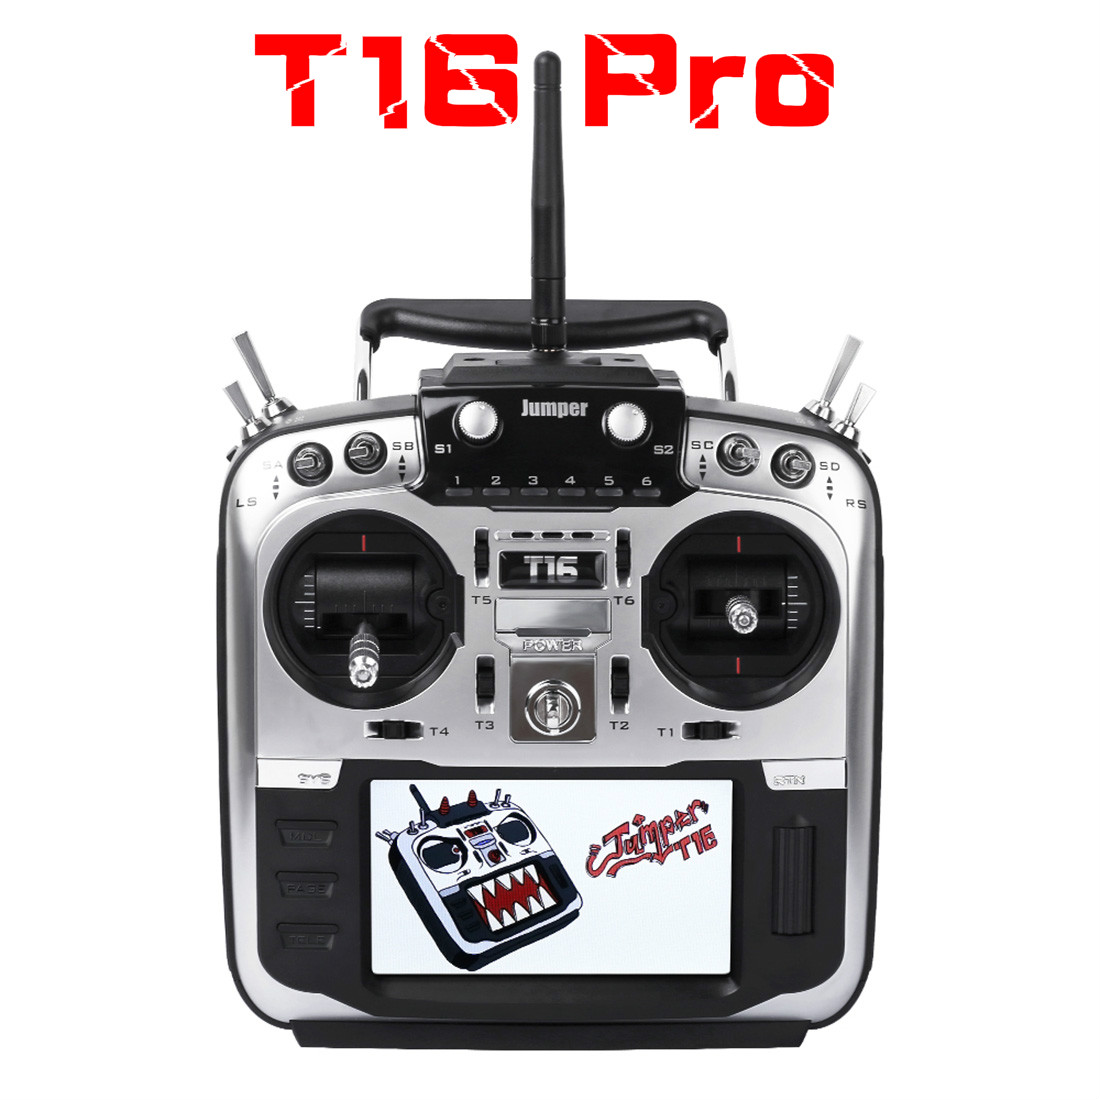 Jumper T16 pro T16 Plus Hall Gimbal Open Source Multi protocol Radio Transmitter JP4 in 1 RF Module 2.4G 16CH Remote controller-in Parts & Accessories from Toys & Hobbies